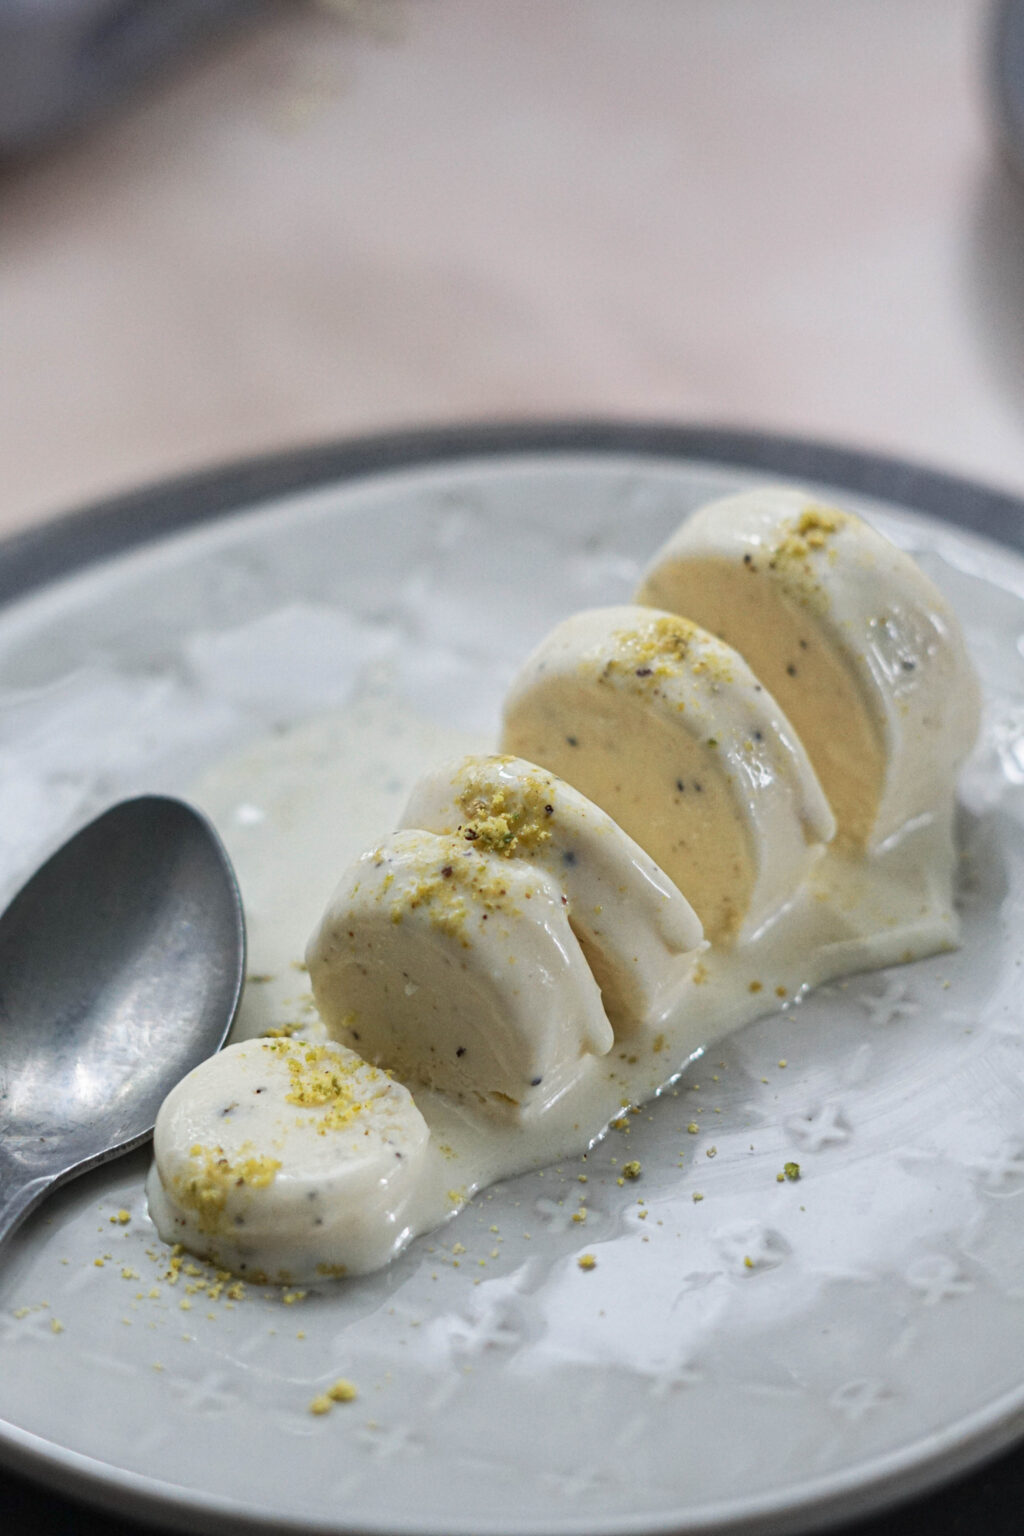 Kulfi with khoya or mawa on a white plate with pistaschio sprinkled on top with a spoon to the side.